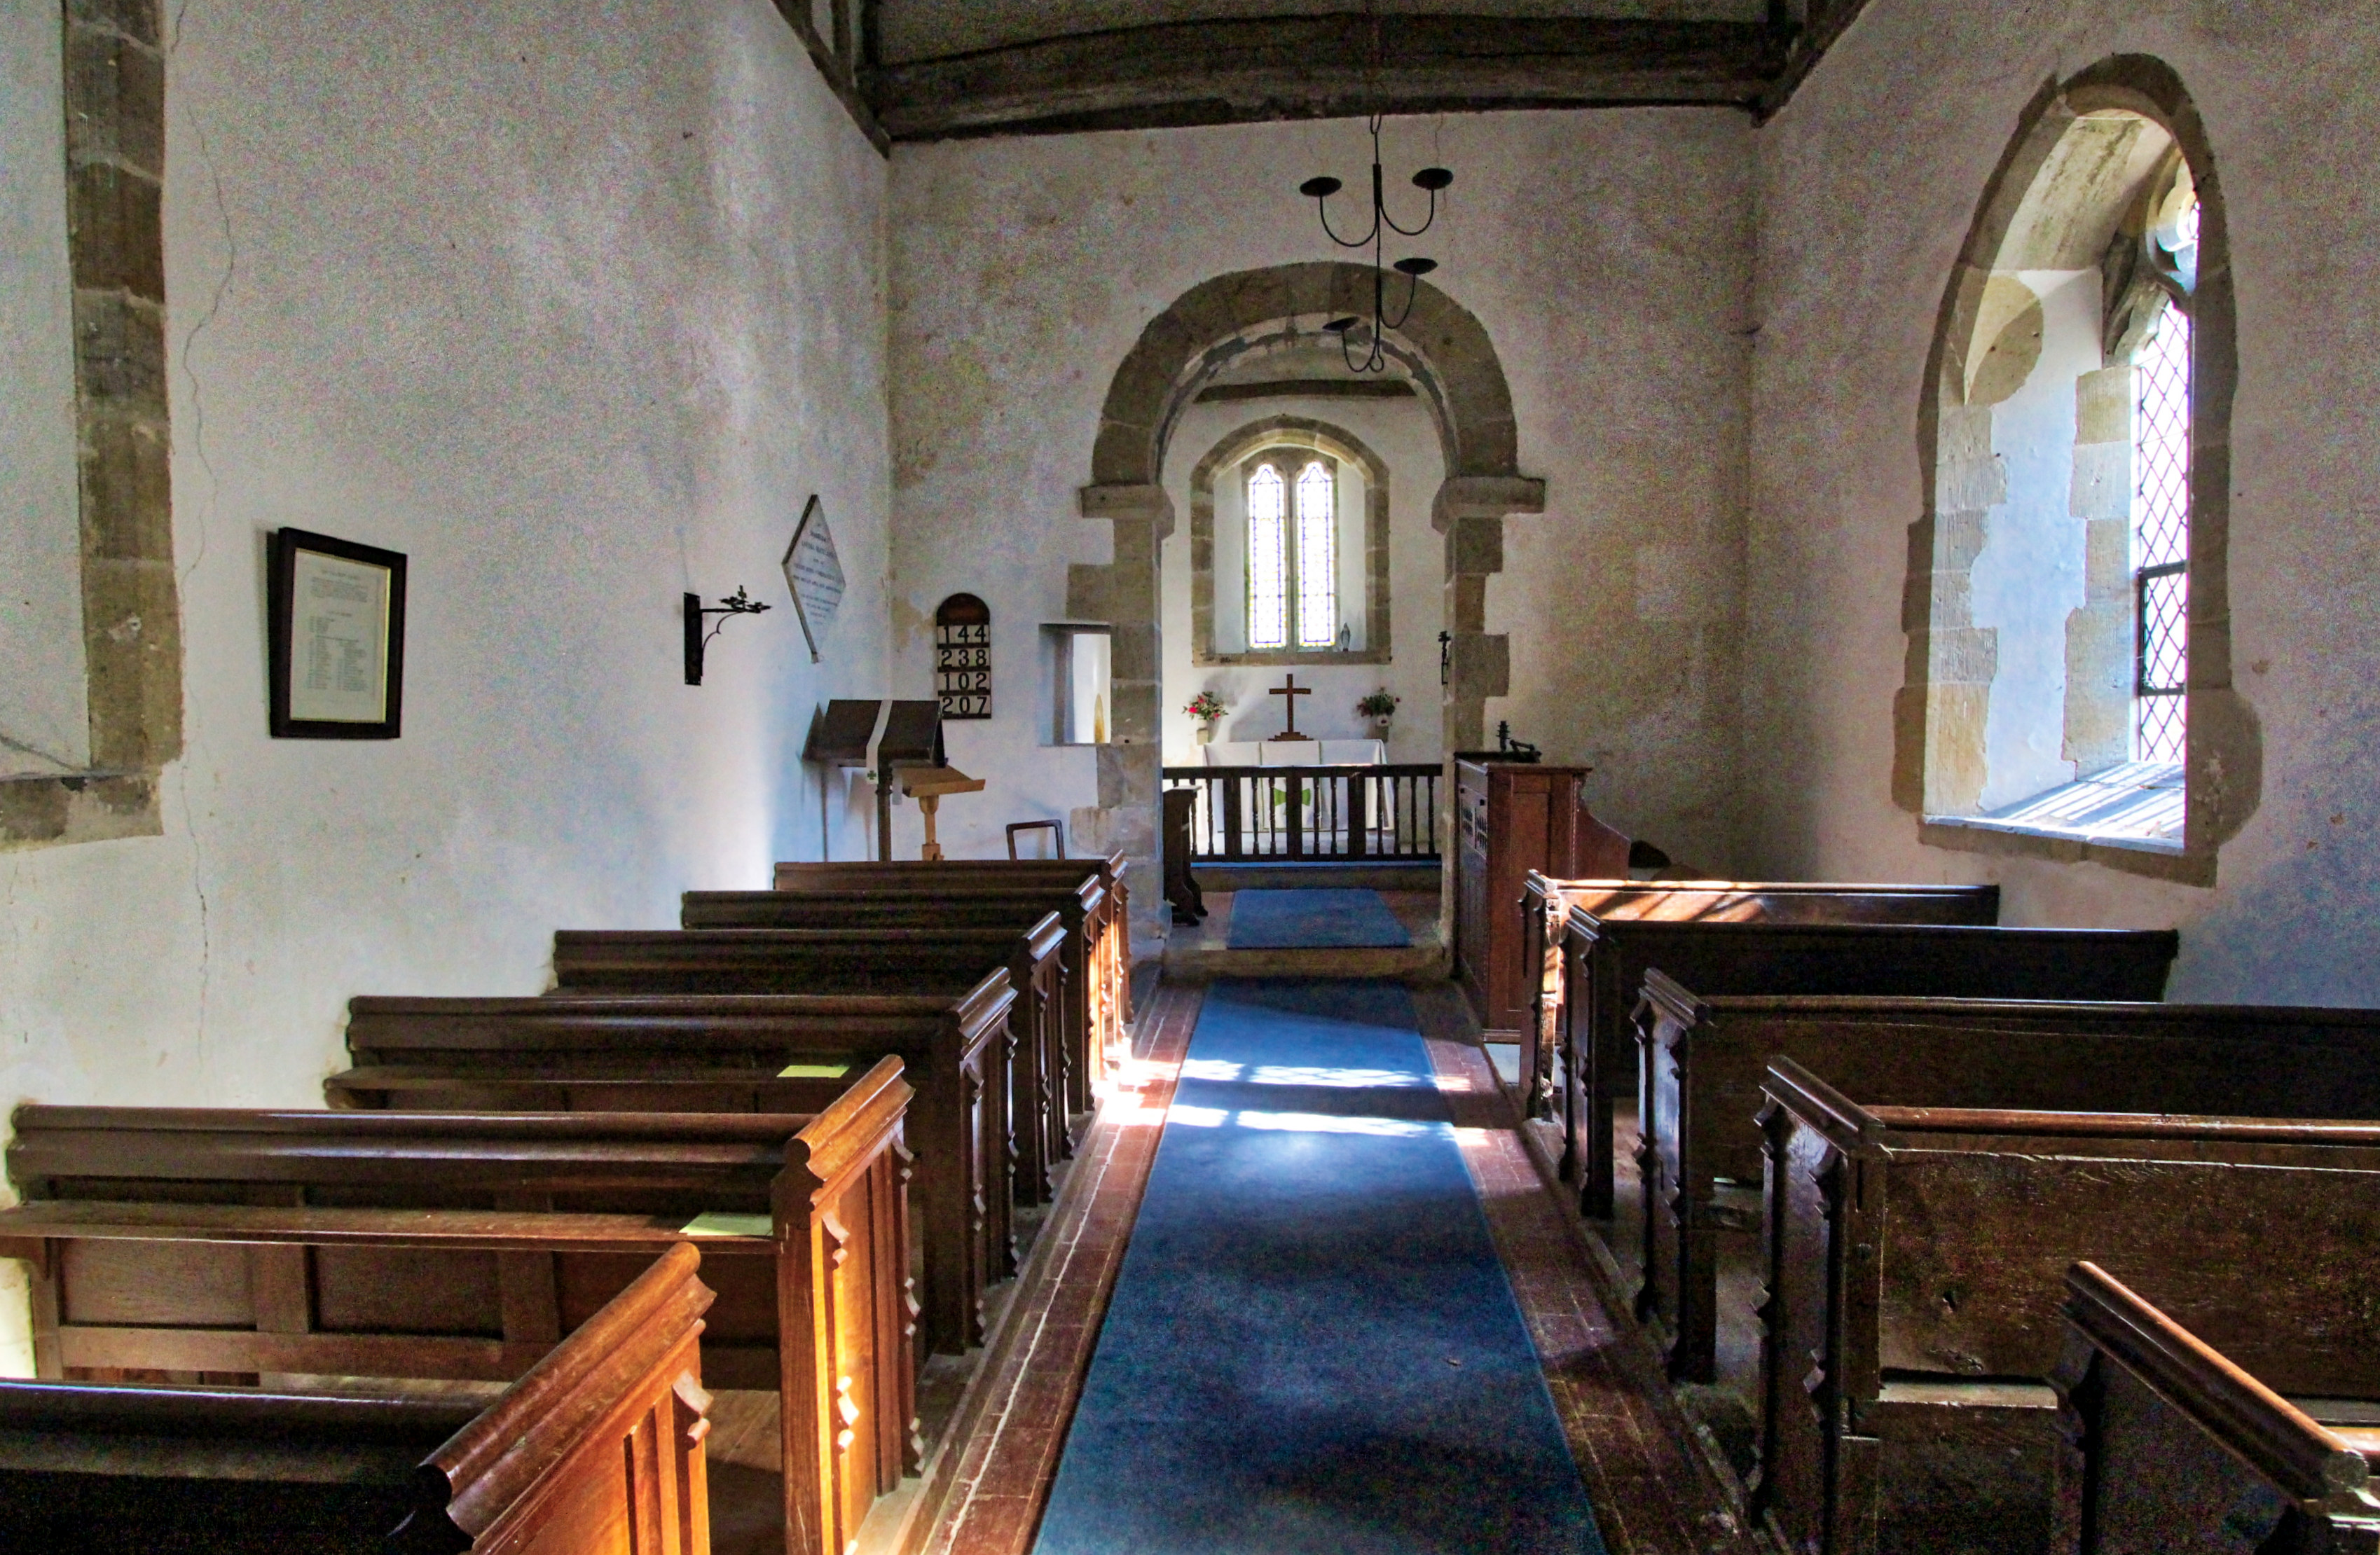 m Chithurst Church Nave